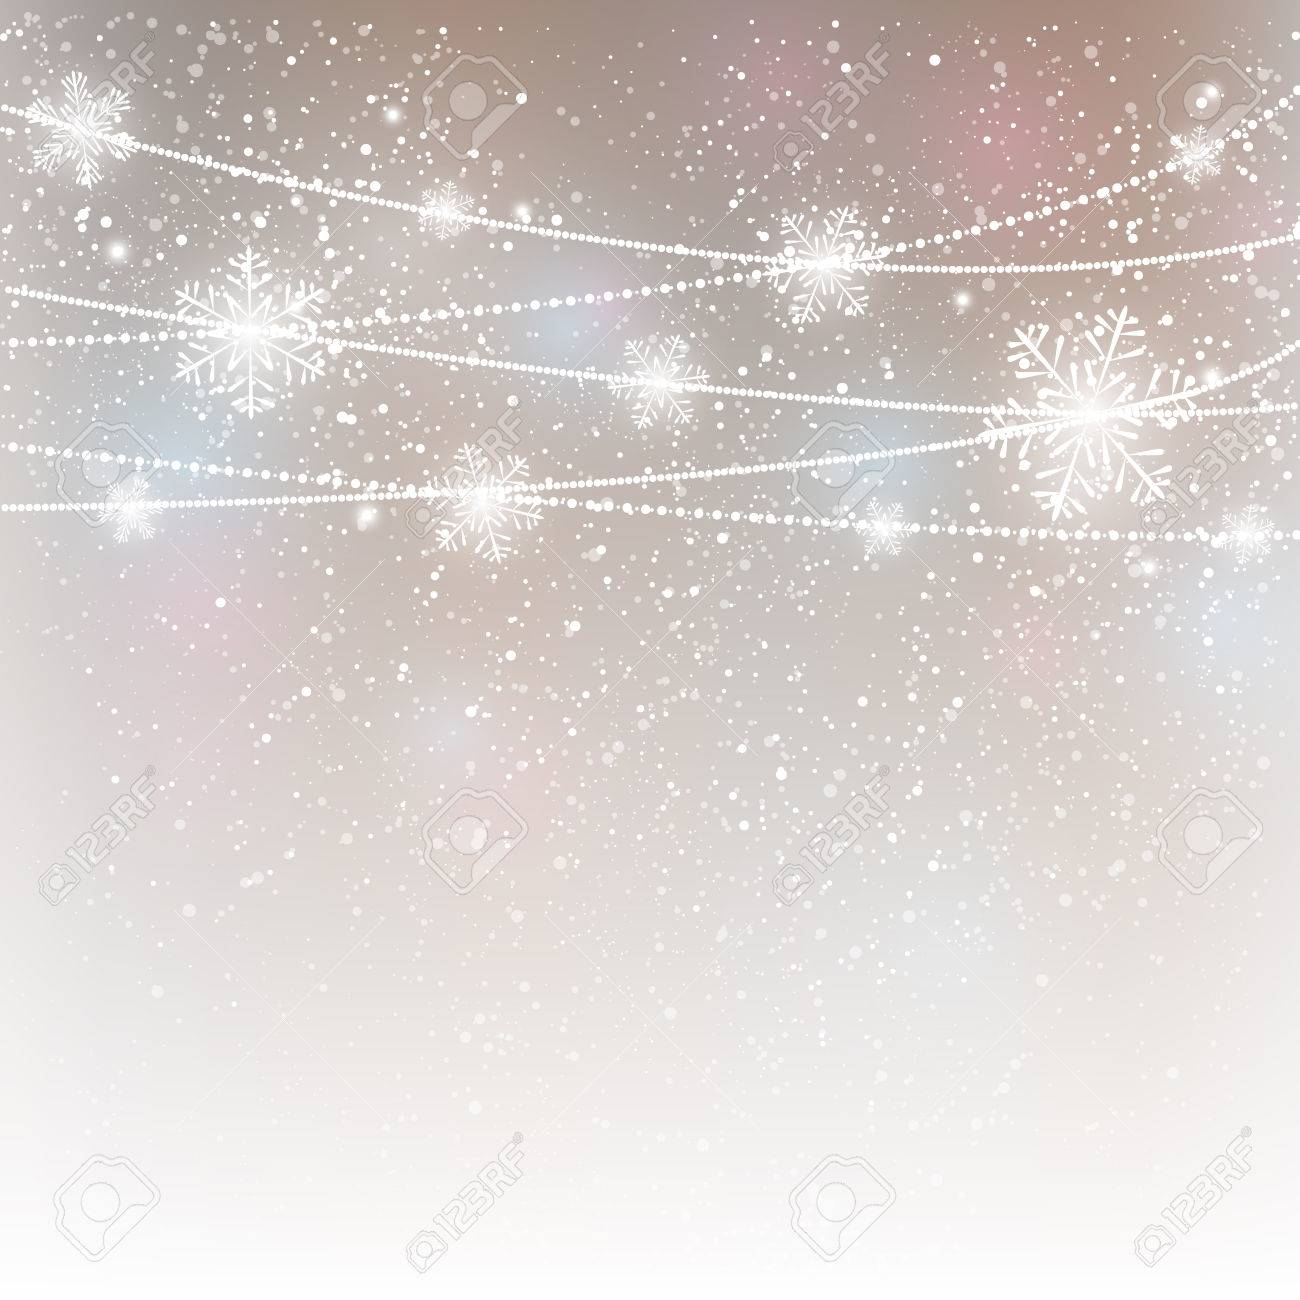 Abstract shiny background for Your design - 34215491